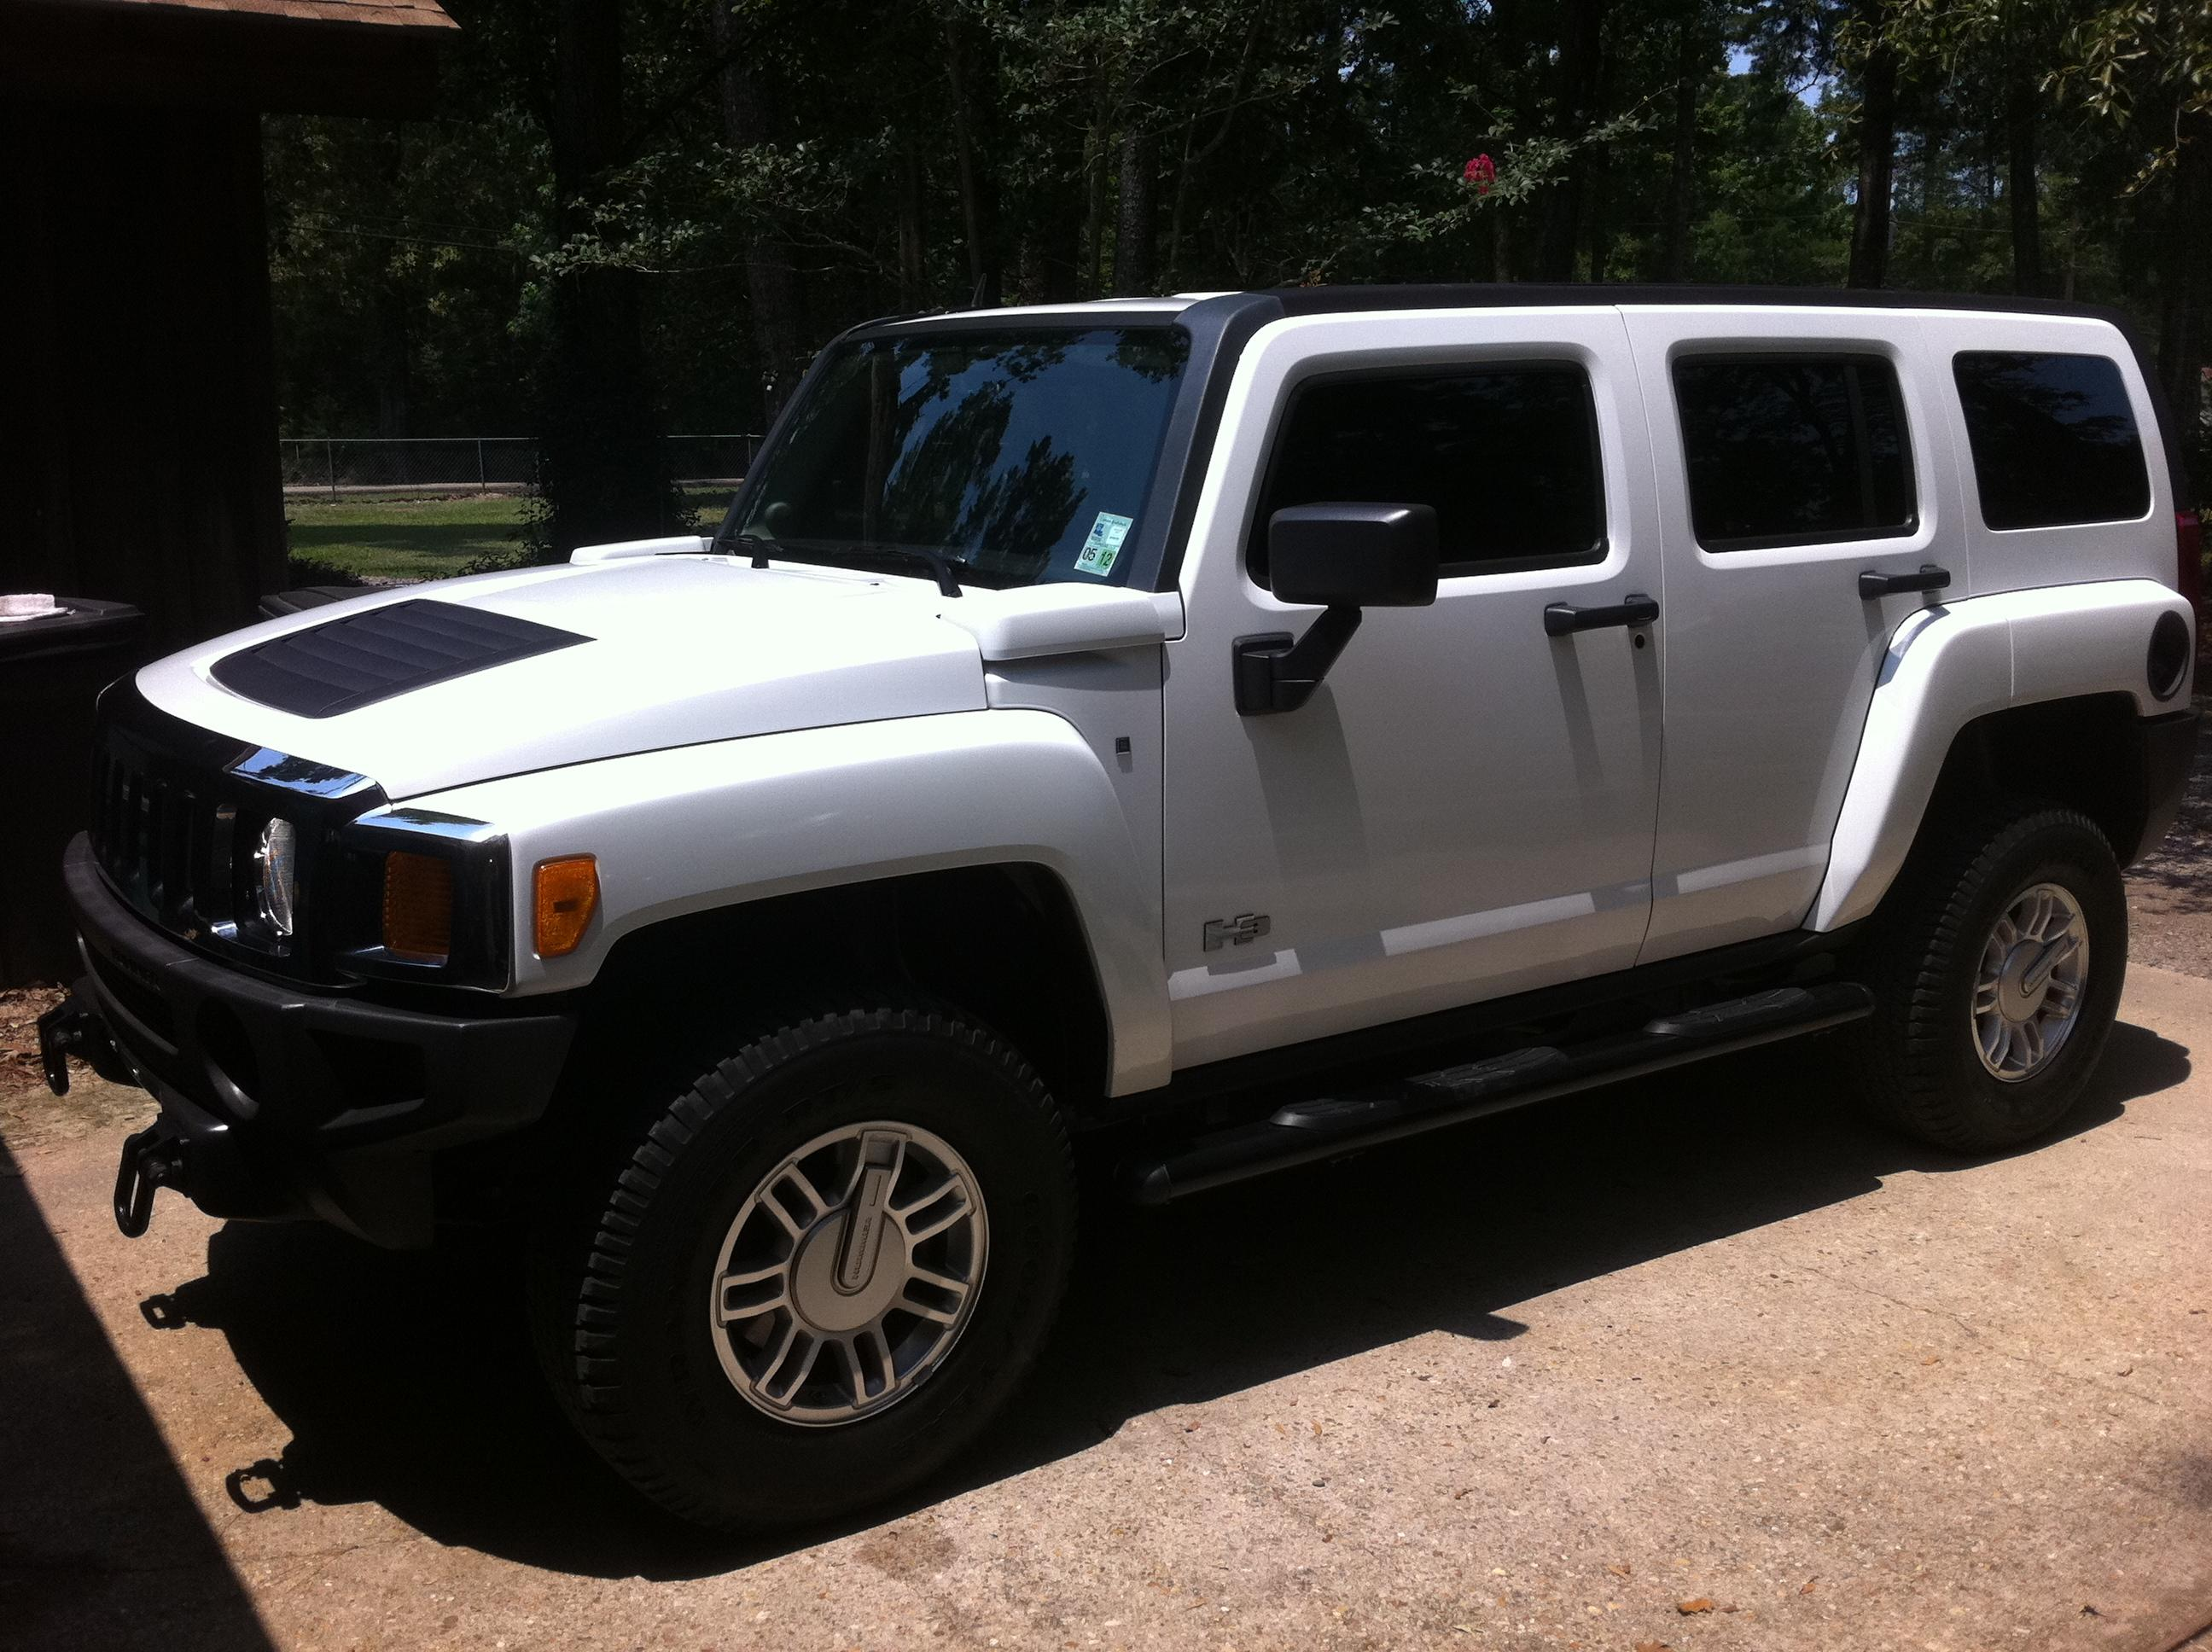 2007whiteeh3 39 s 2007 hummer h3 in greenwell springs la. Black Bedroom Furniture Sets. Home Design Ideas